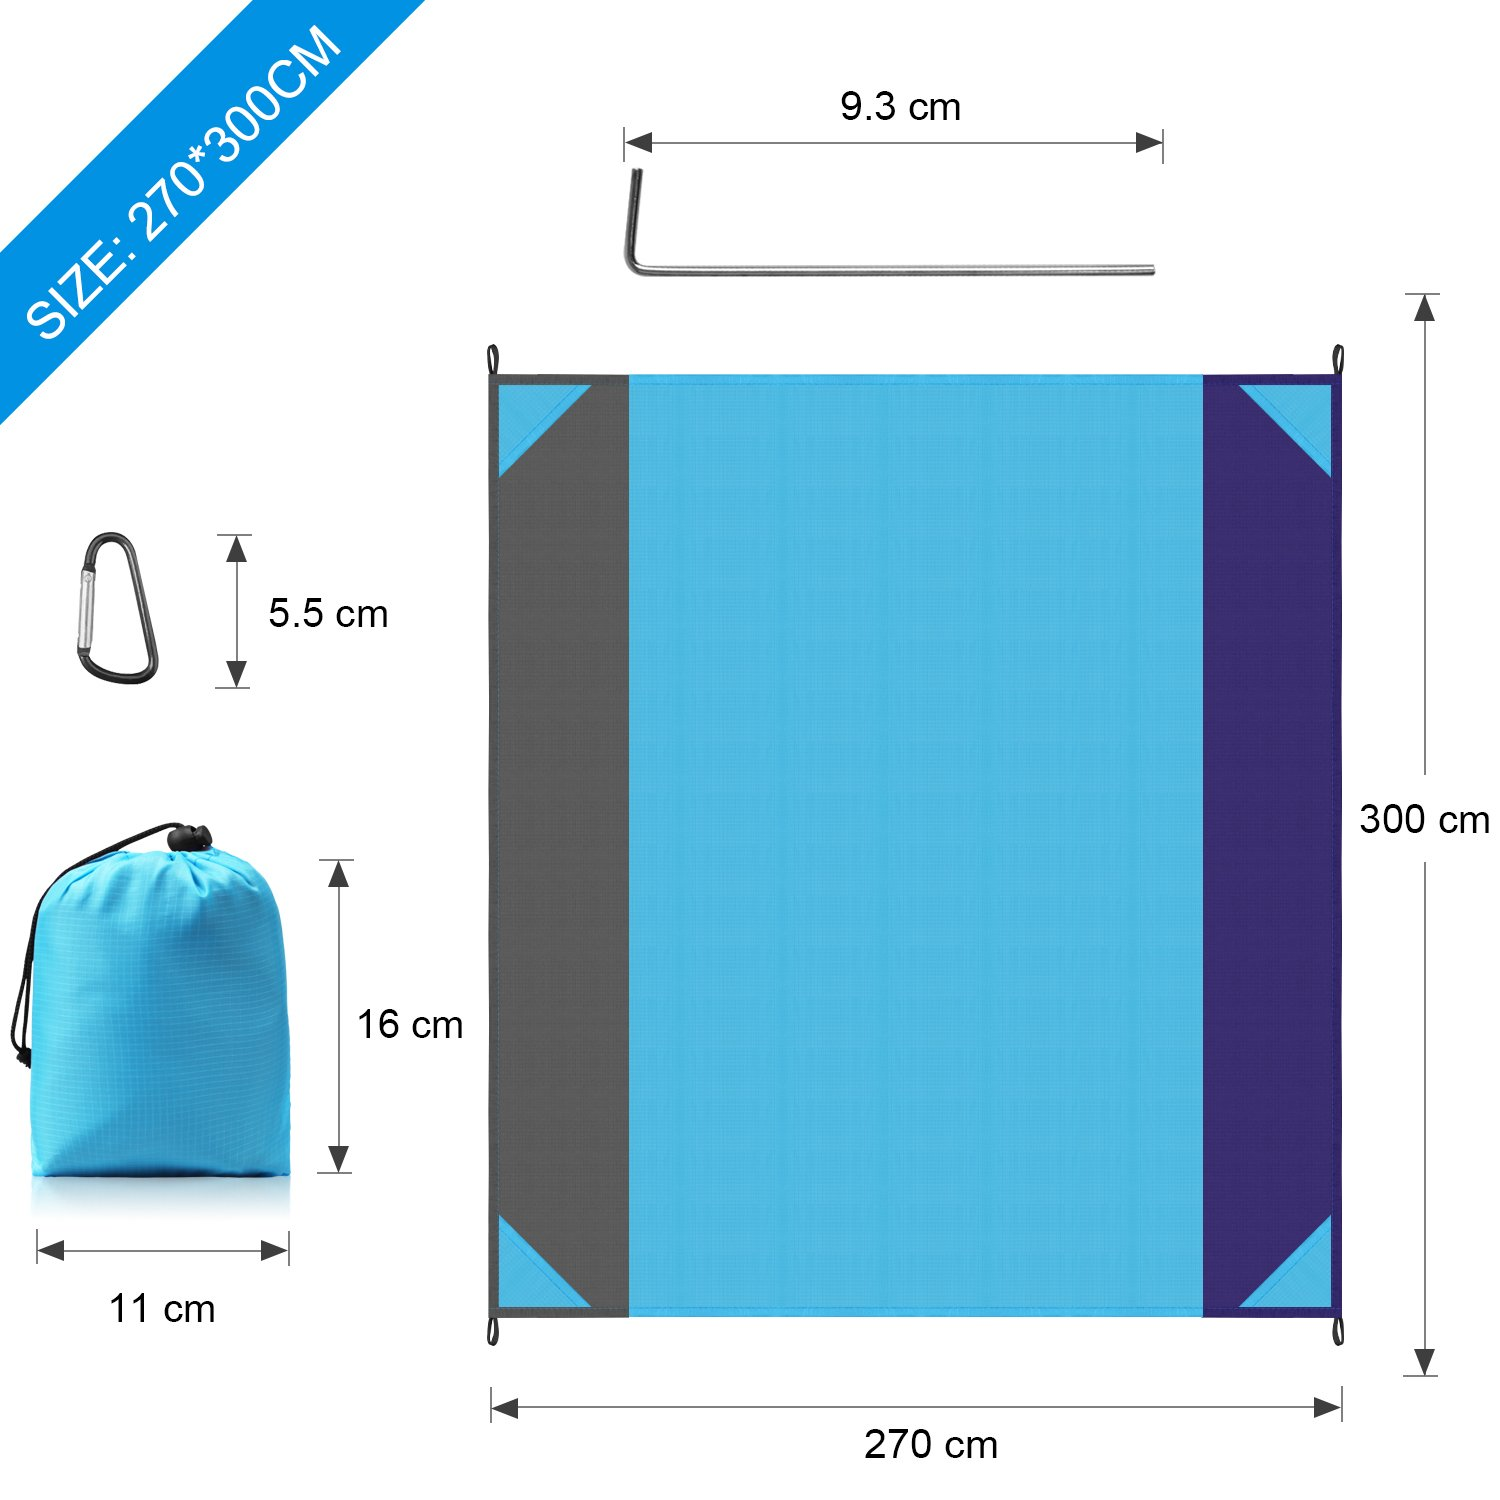 Waterproof Outdoor Picnic Mat for Beach Machine Washable STCT Street Cat 10X 9 Extra Large Beach Blanket Camping Music Festival Hiking Soft Lightweight Pocket Blanket